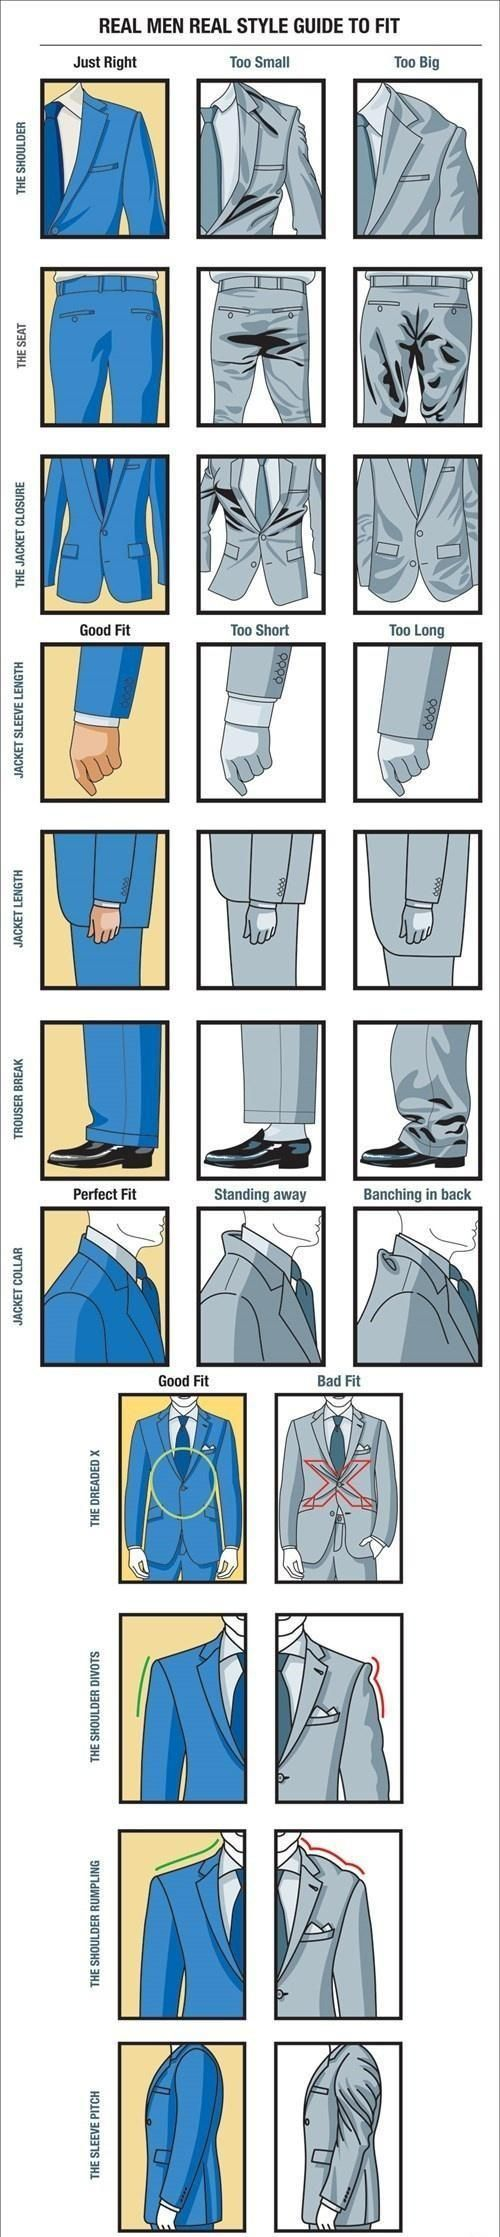 Men's Style Guide.